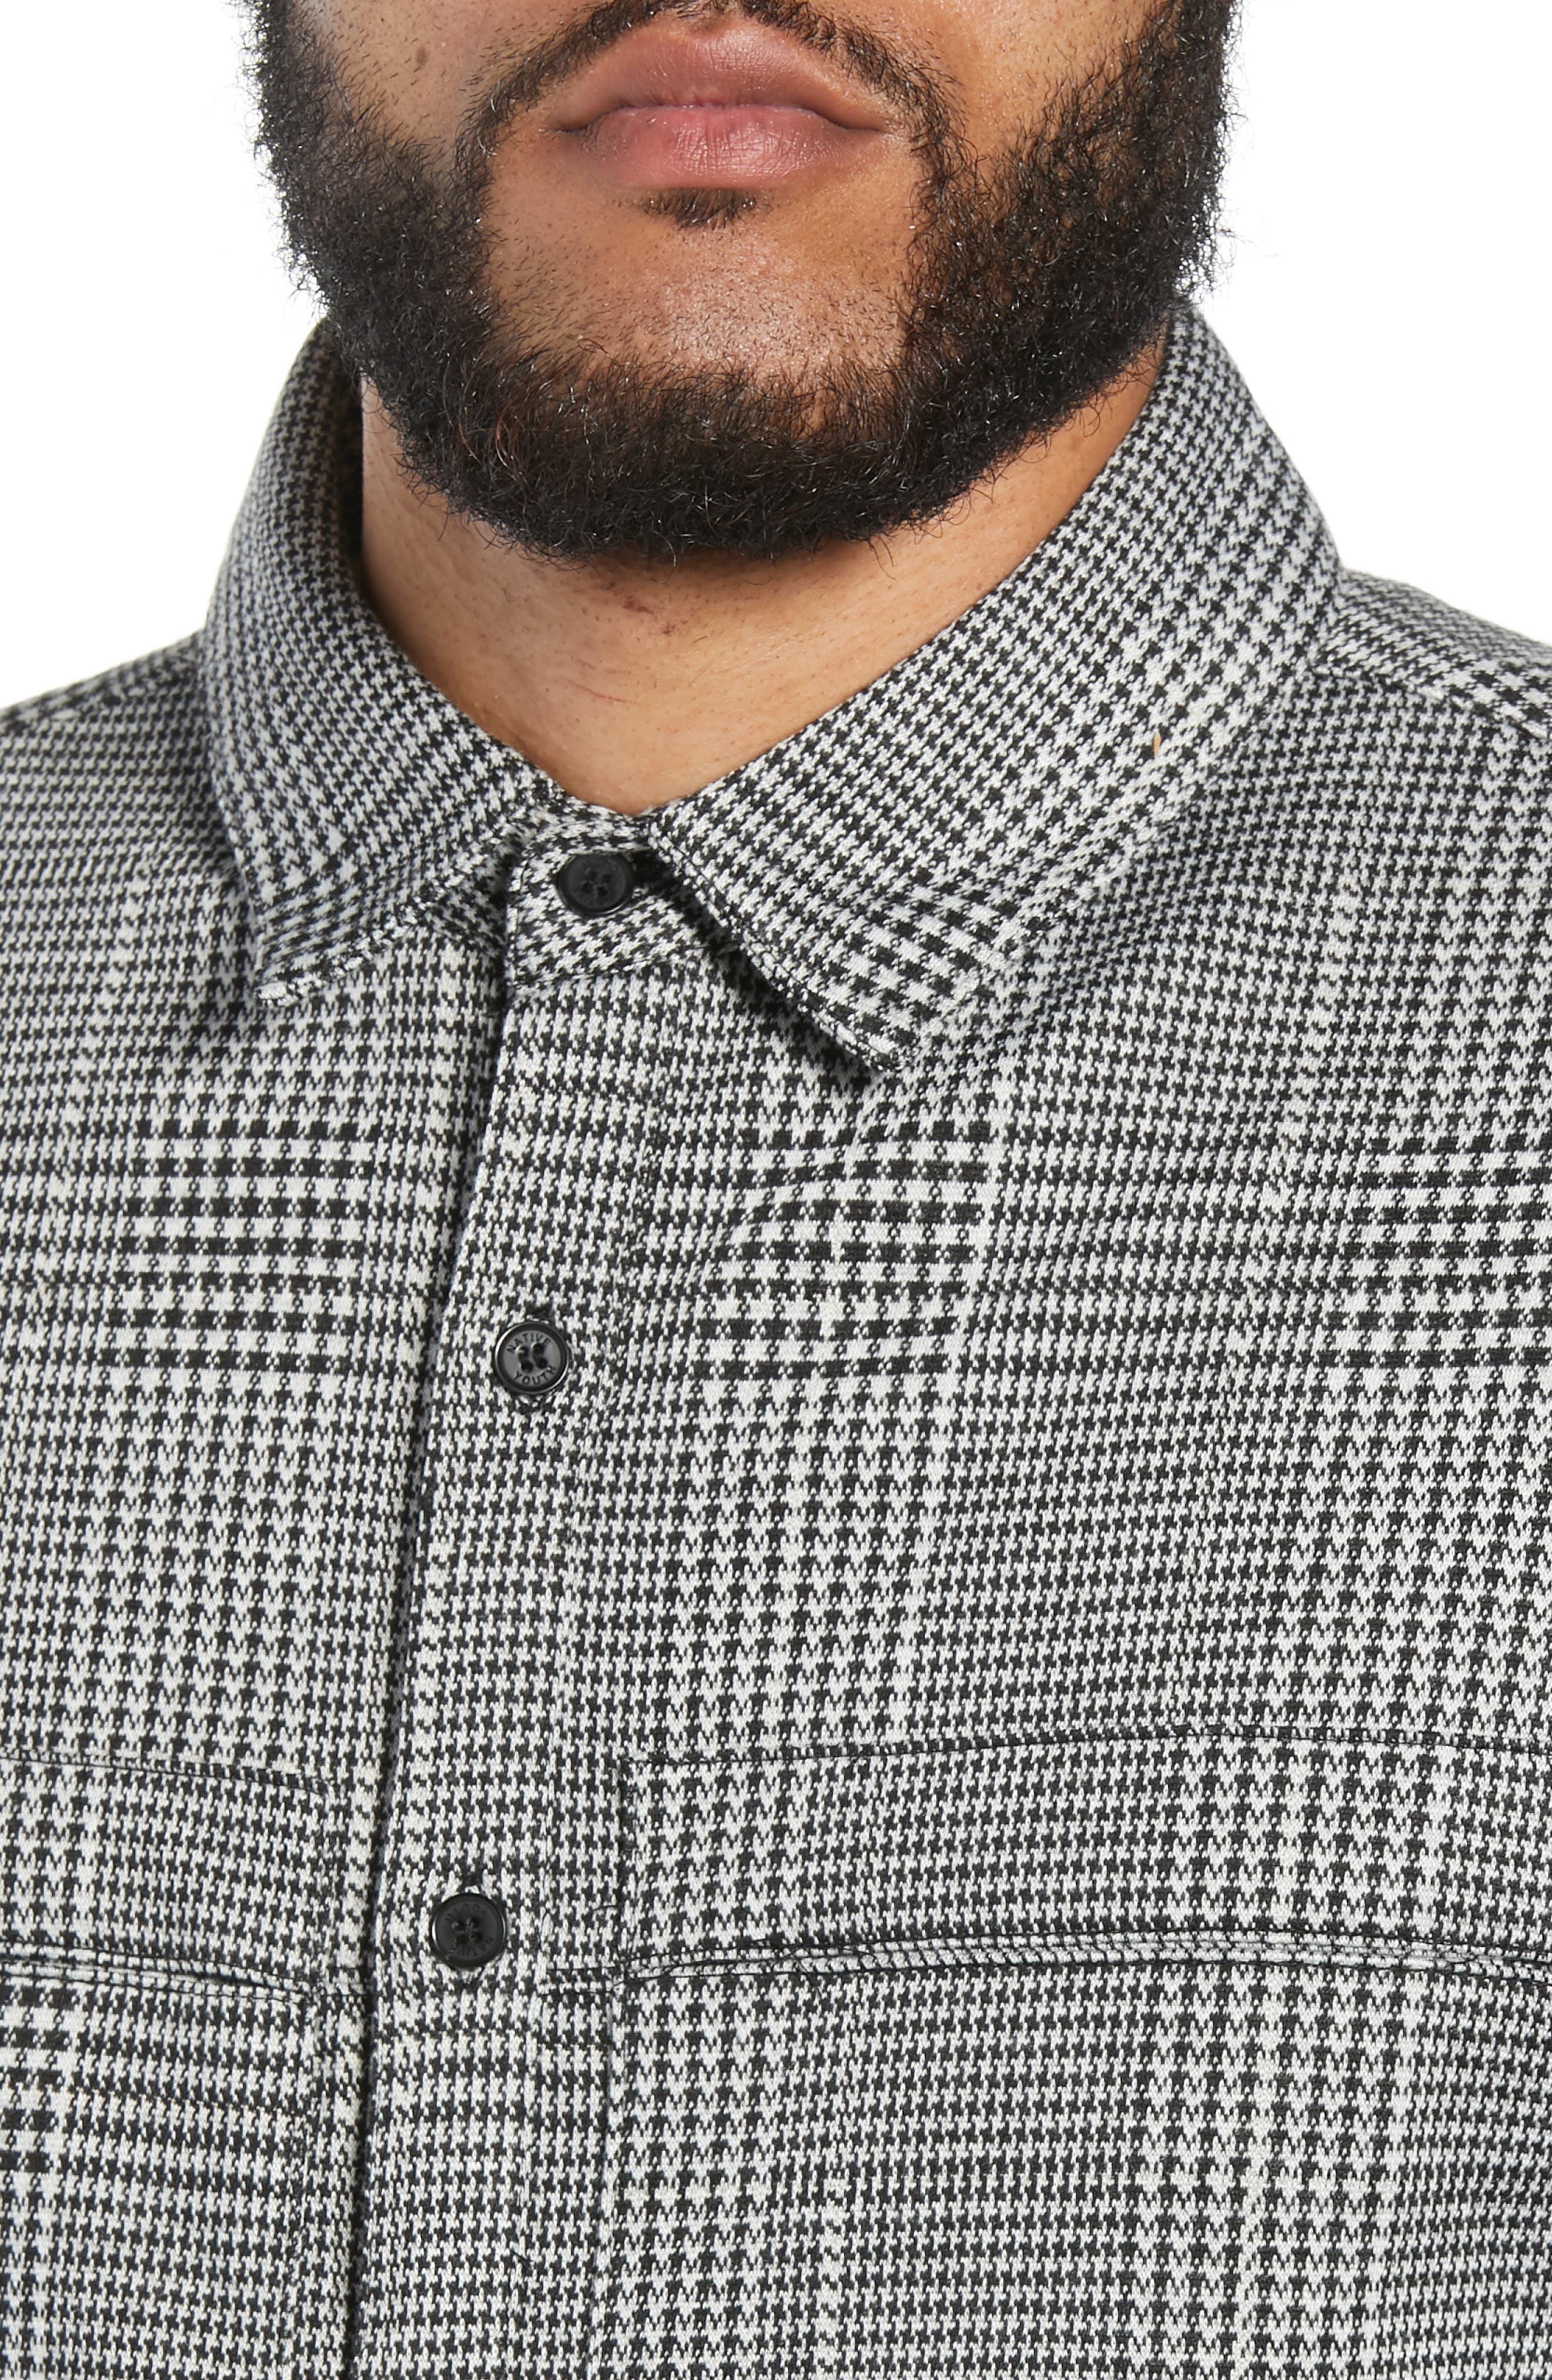 Houndstooth Check Overshirt,                             Alternate thumbnail 4, color,                             BLACK